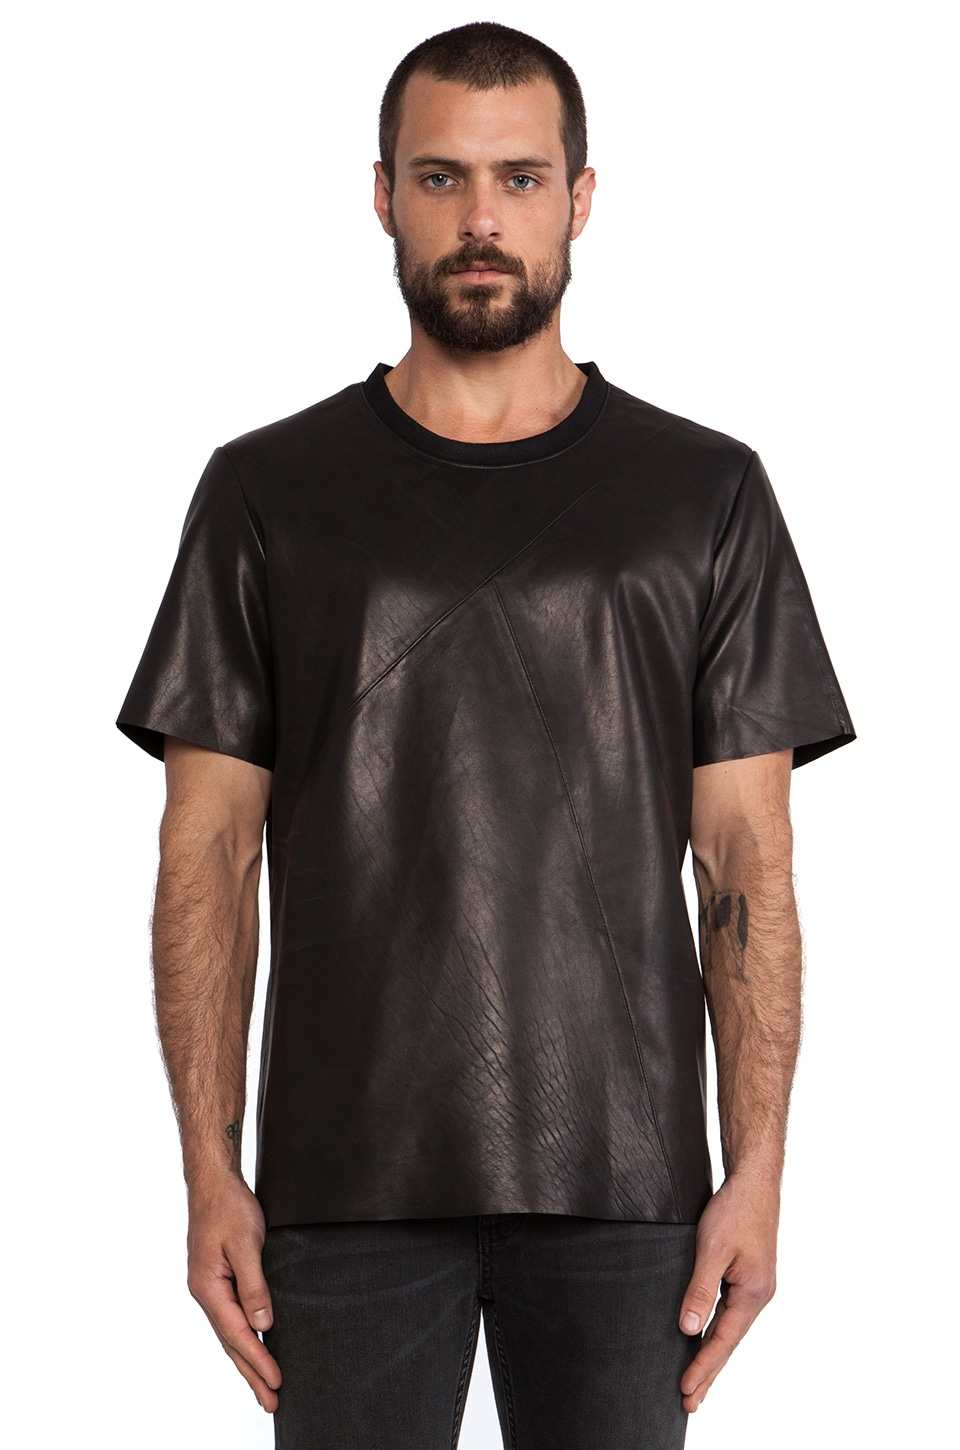 BLK DNM Leather T-Shirt 12 in Black